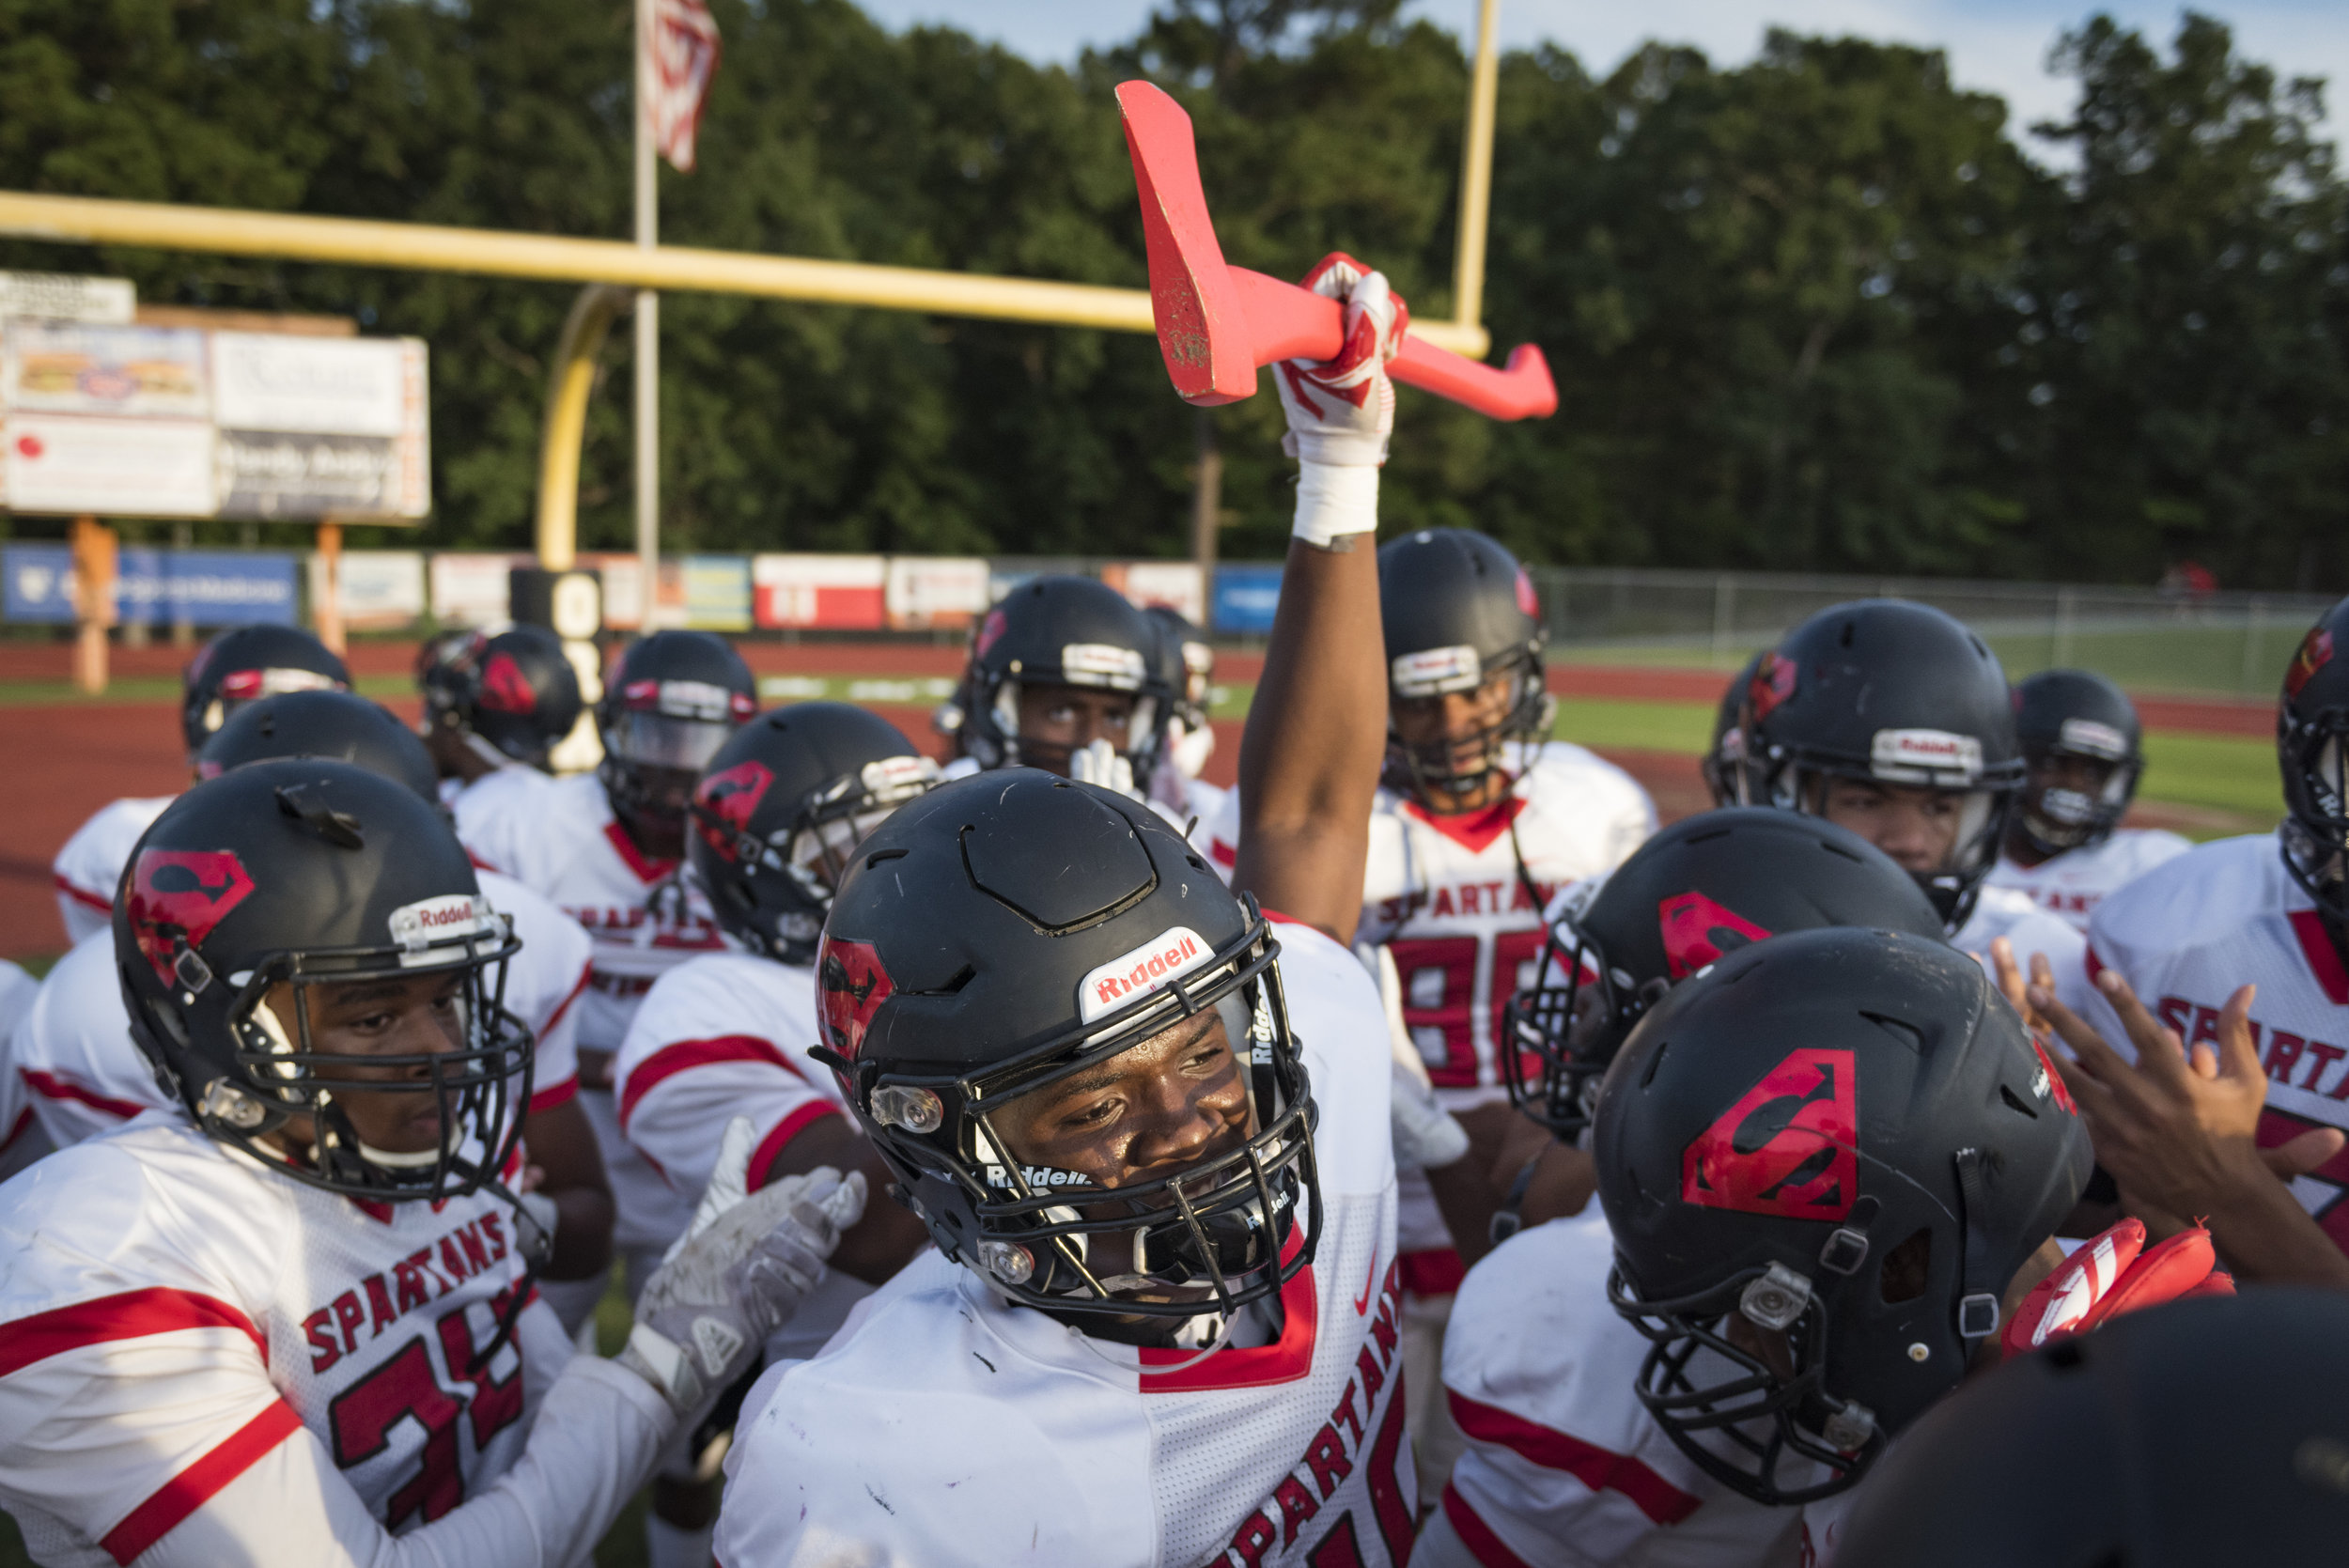 Southern Durham junior linebacker Jaki Brevard raises the team axe before the Spartan's game against Orange Highschool in Hillsborough, North Carolina. The team captain usually carries the axe before games.